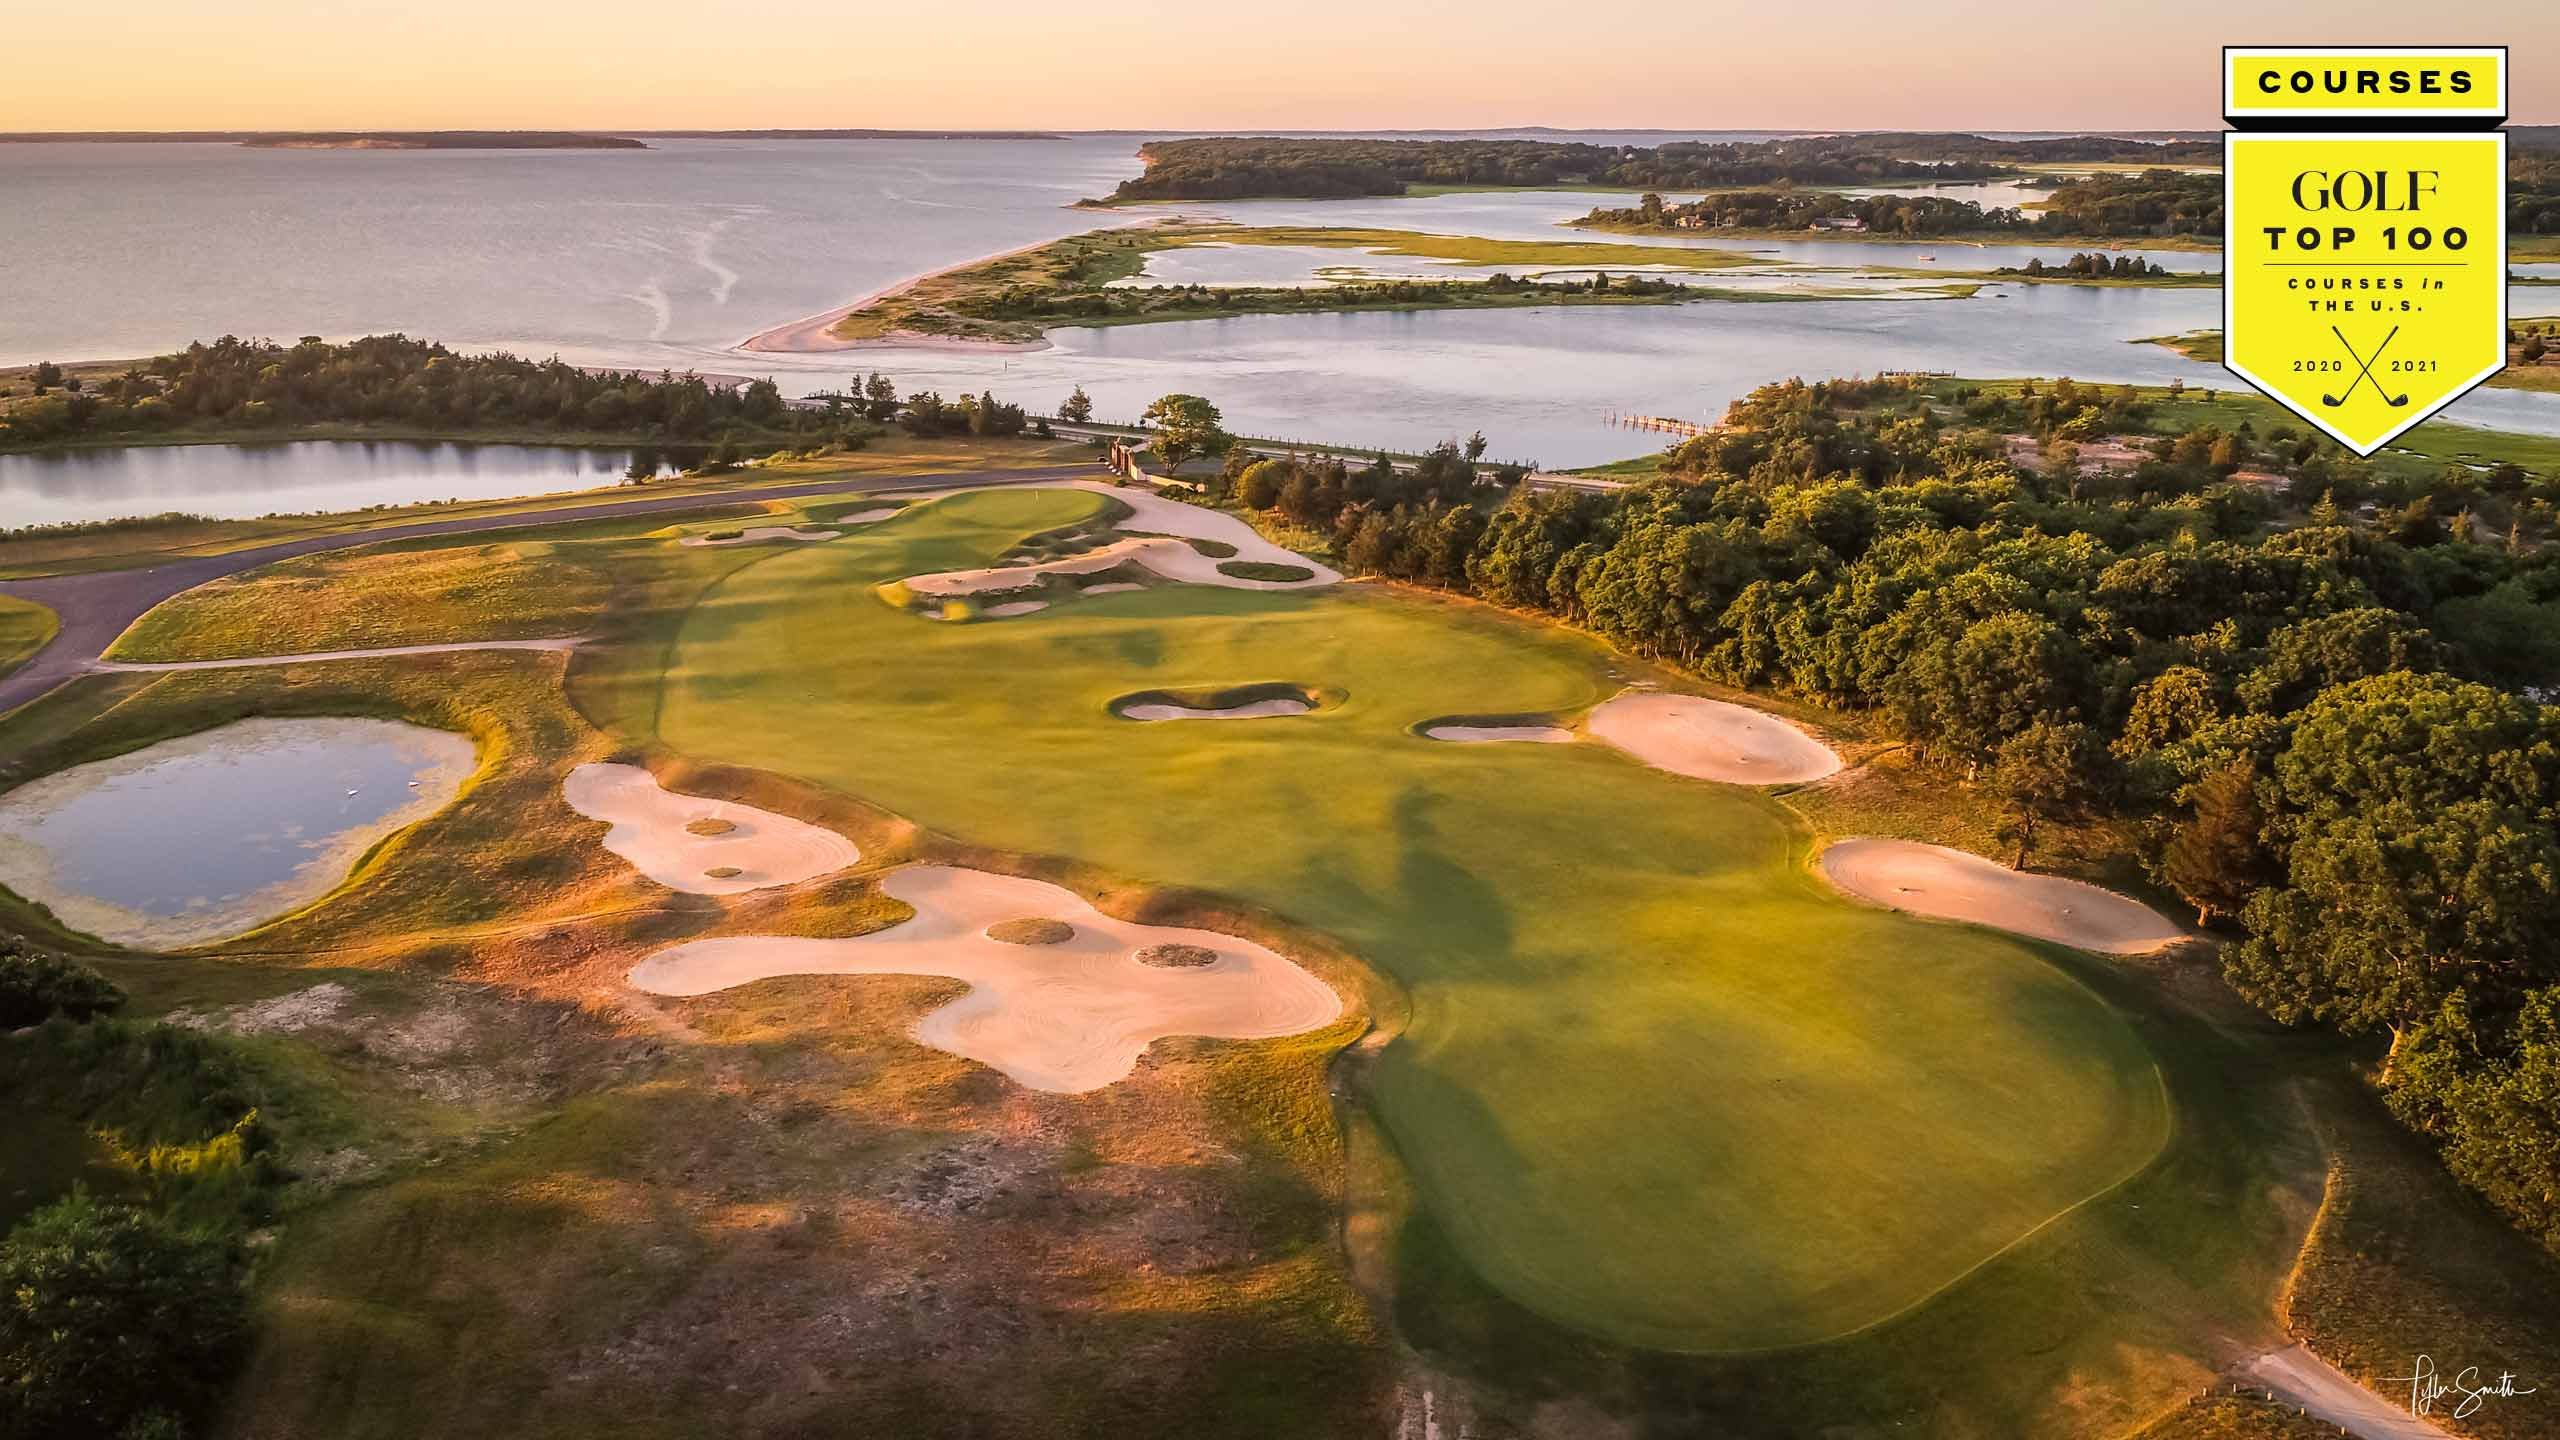 What our Top 100 Courses in the U.S. list reveals about ...